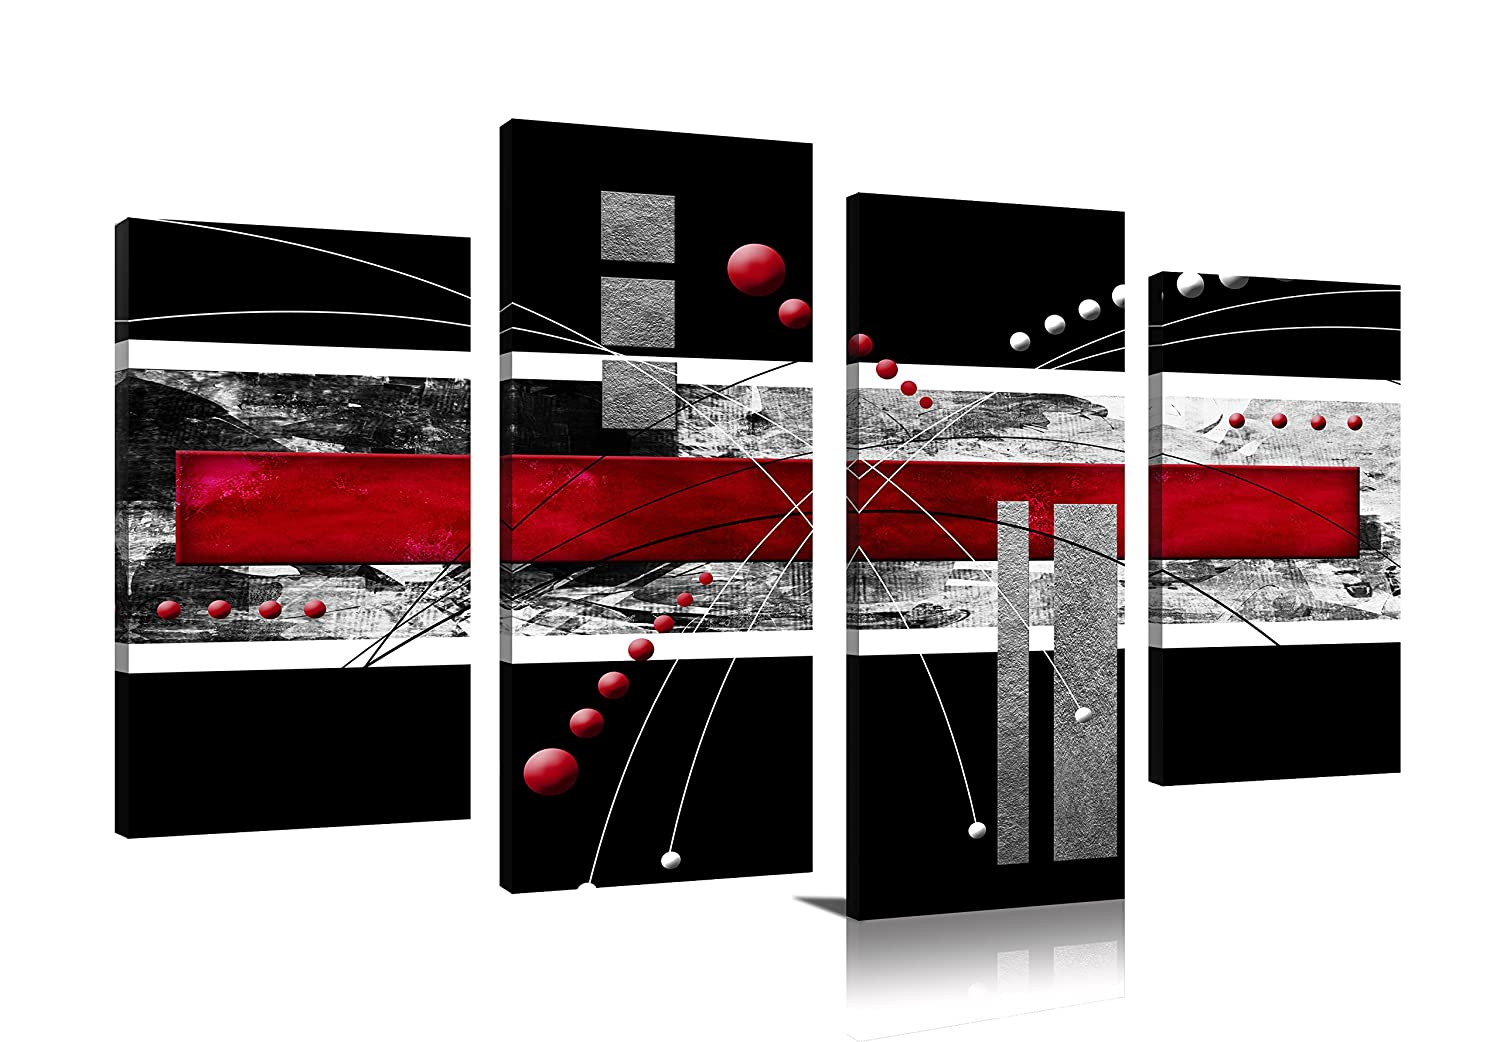 YPY Black Red Canvas Material 4 Panels Abstract Modern Artwork for Wall Decoration Ready to Hang Living Room Bedroom